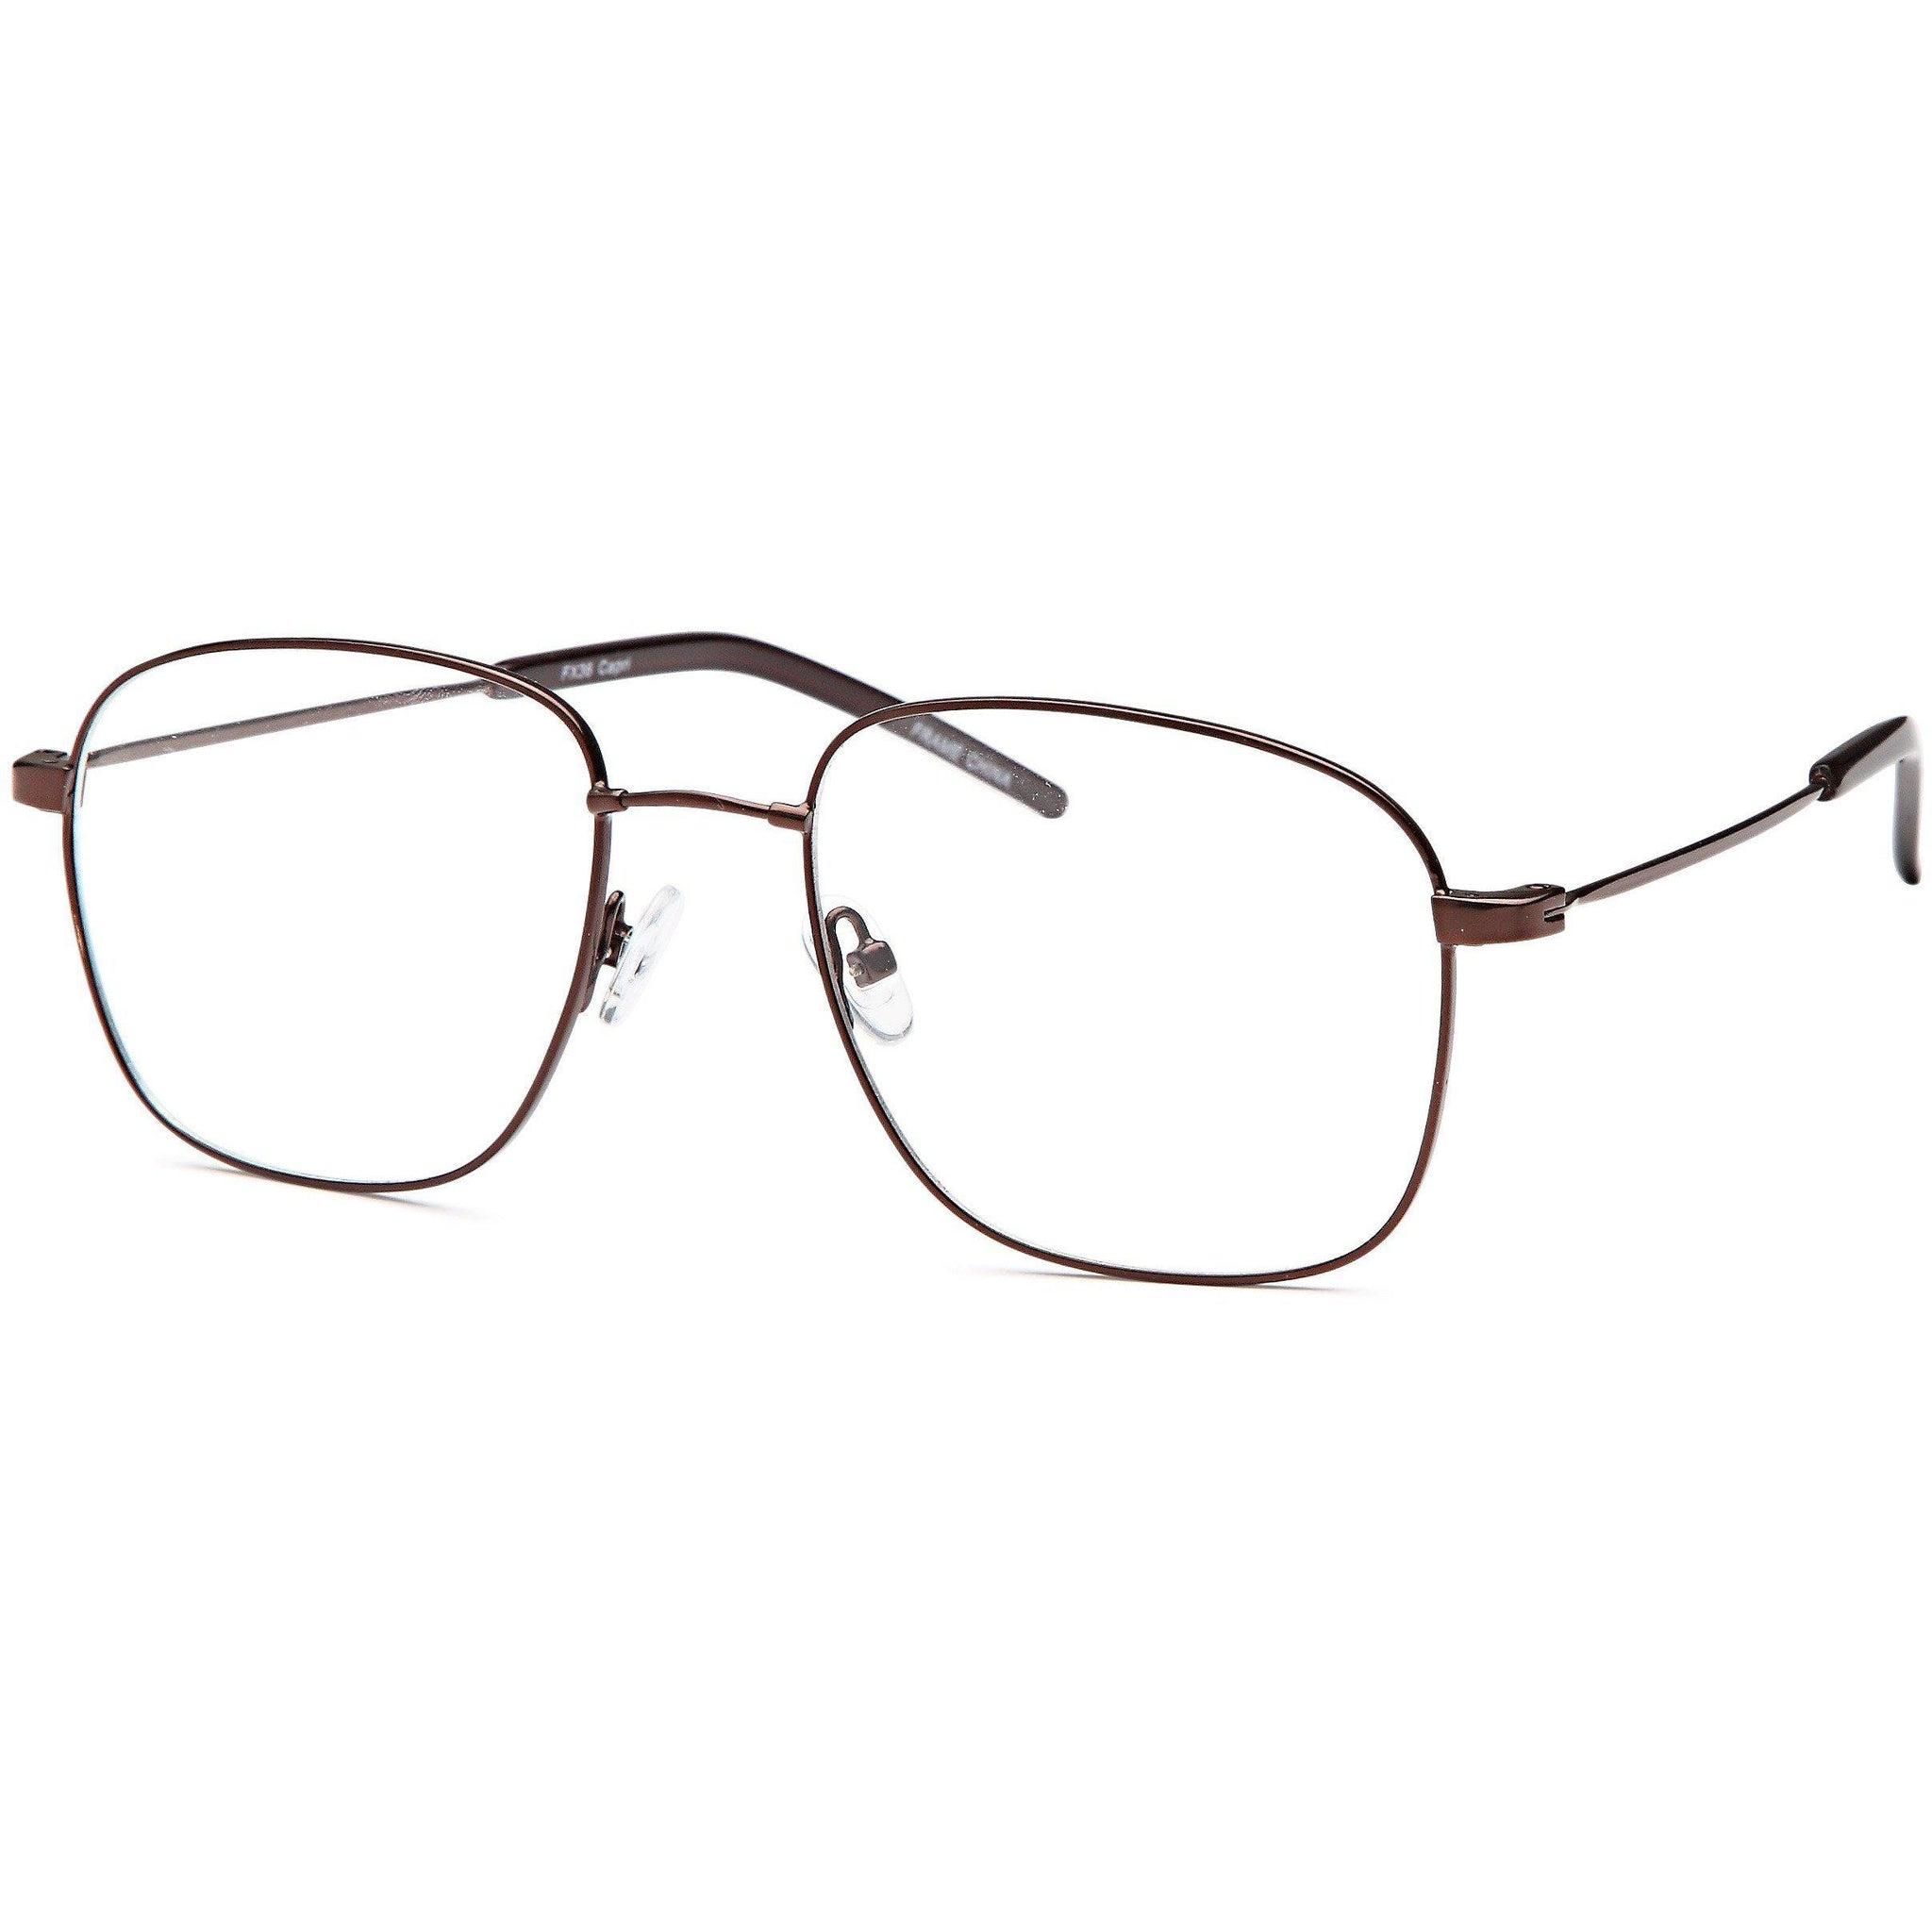 Titanium Prescription Glasses FX 36 Eyeglasses Frame